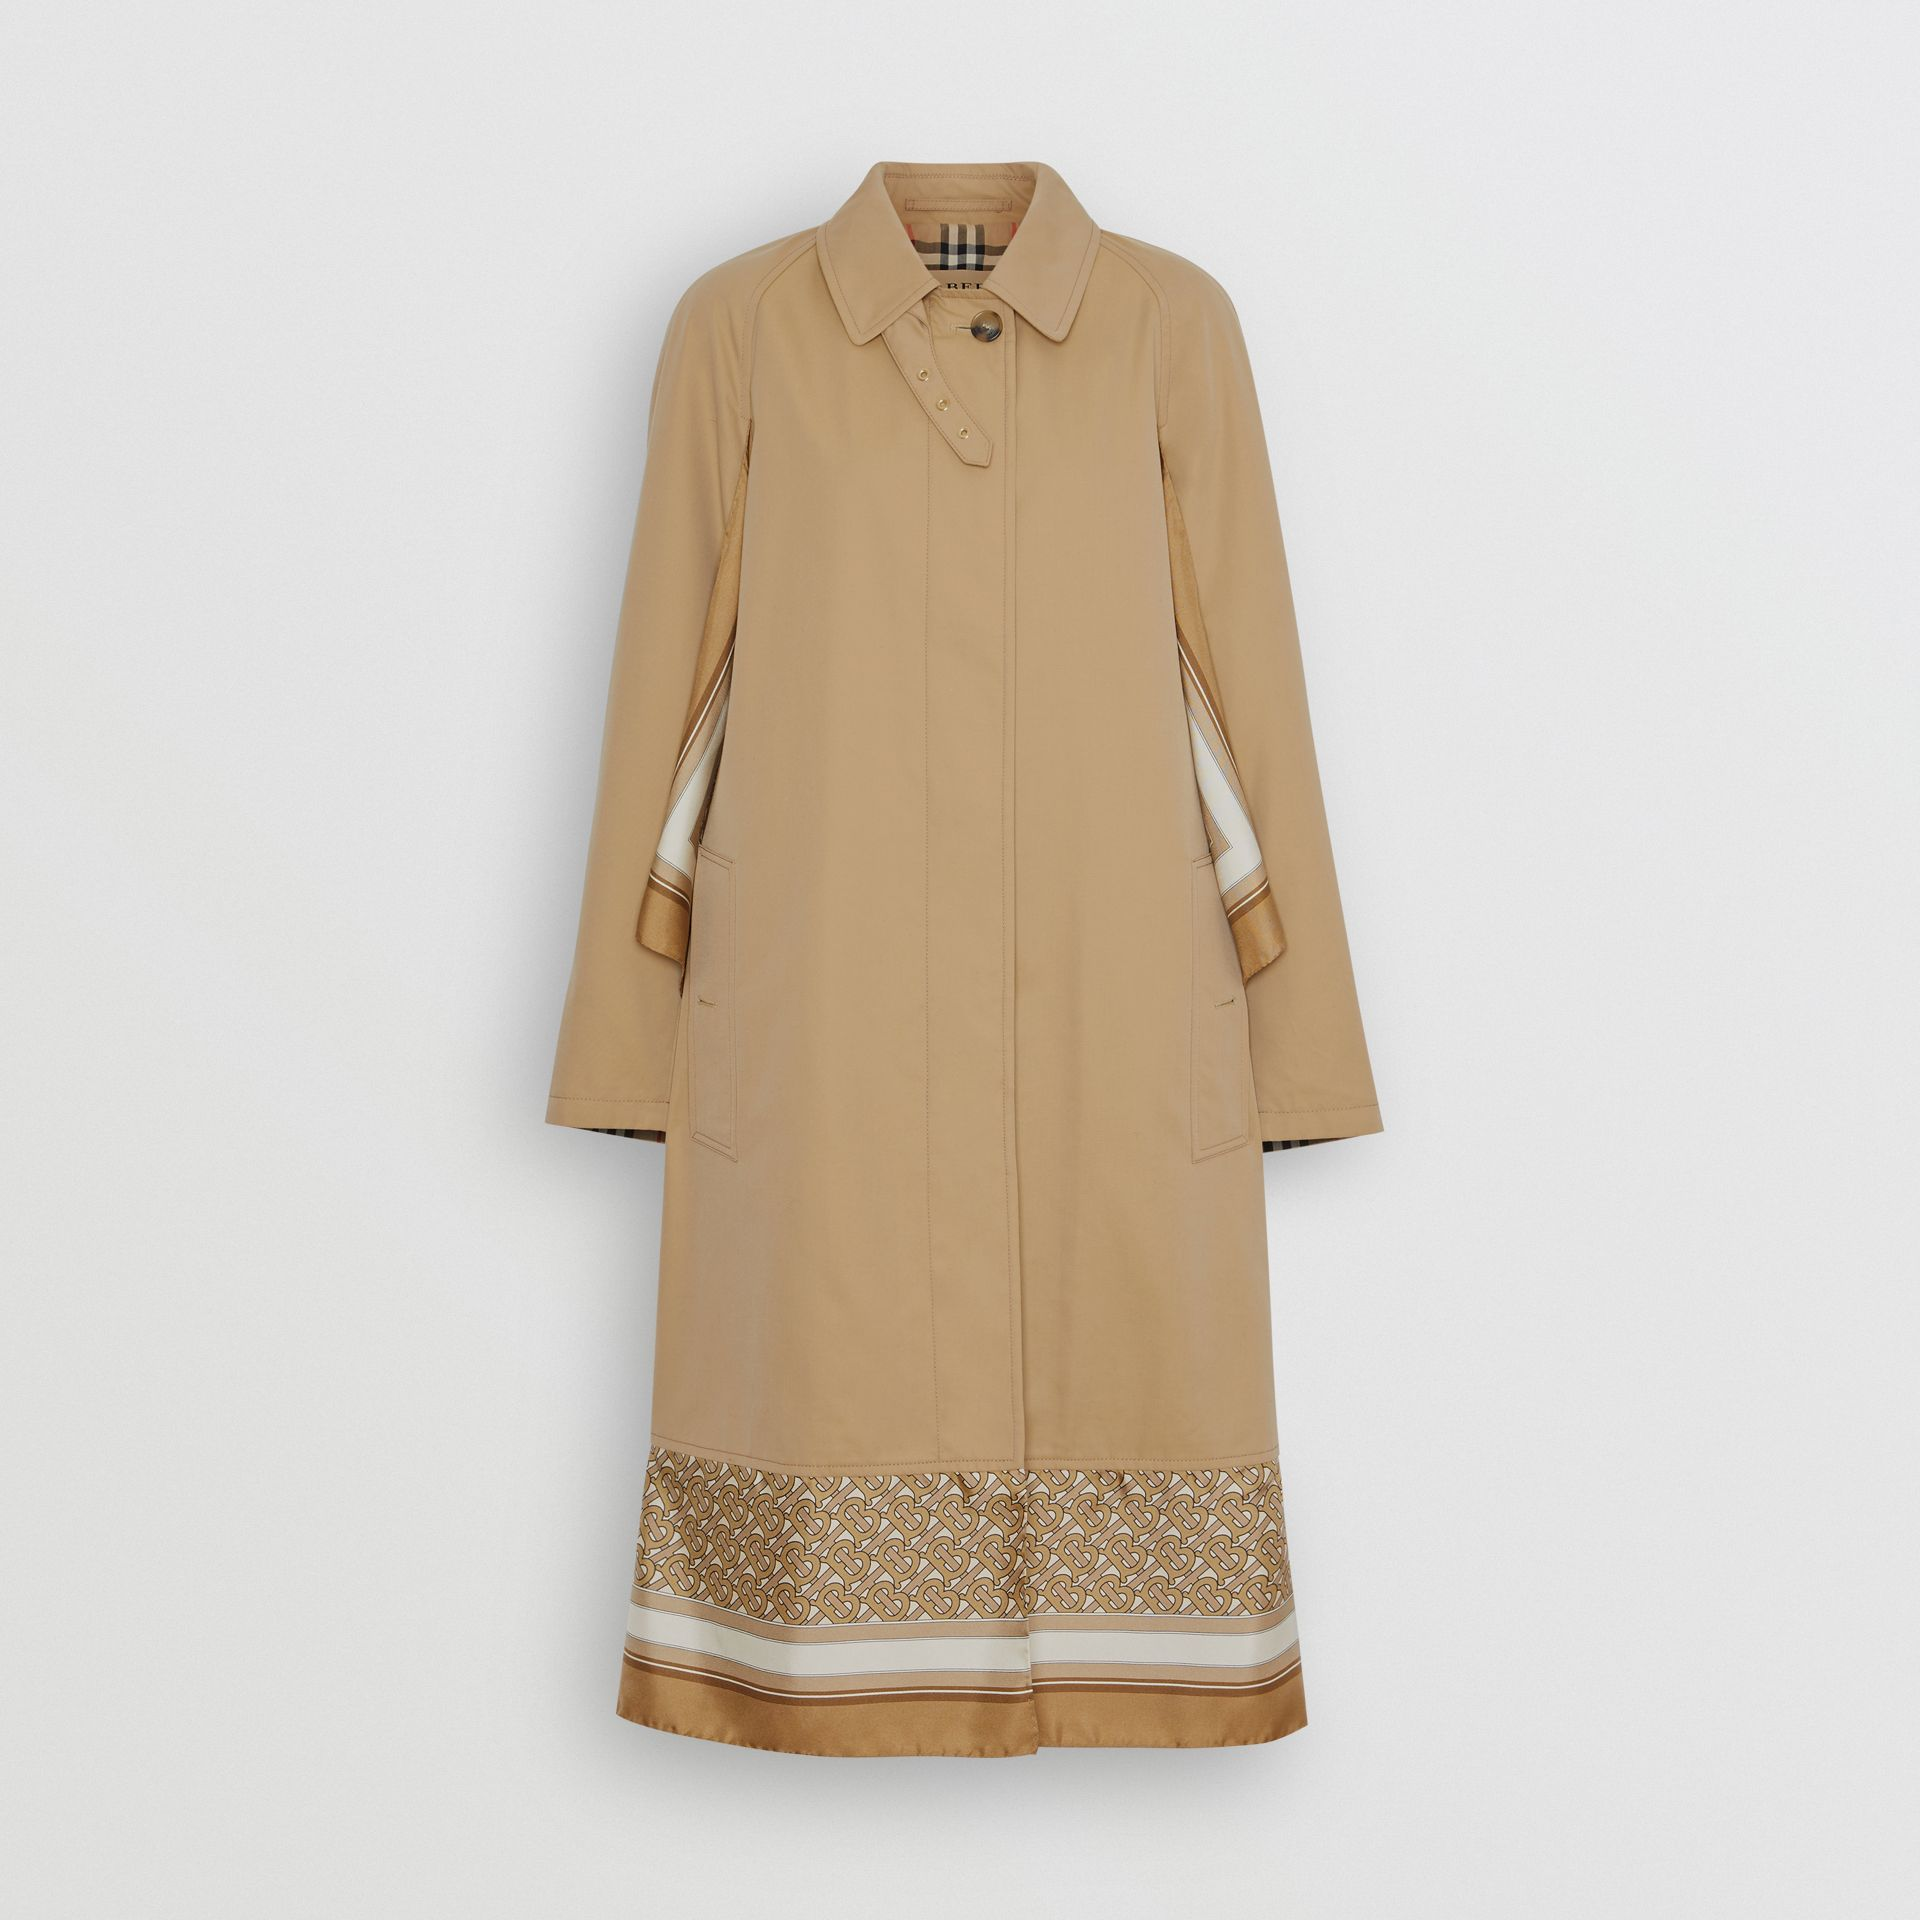 Monogram Print Silk Panel Cotton Car Coat in Pale Honey - Women | Burberry United States - gallery image 3